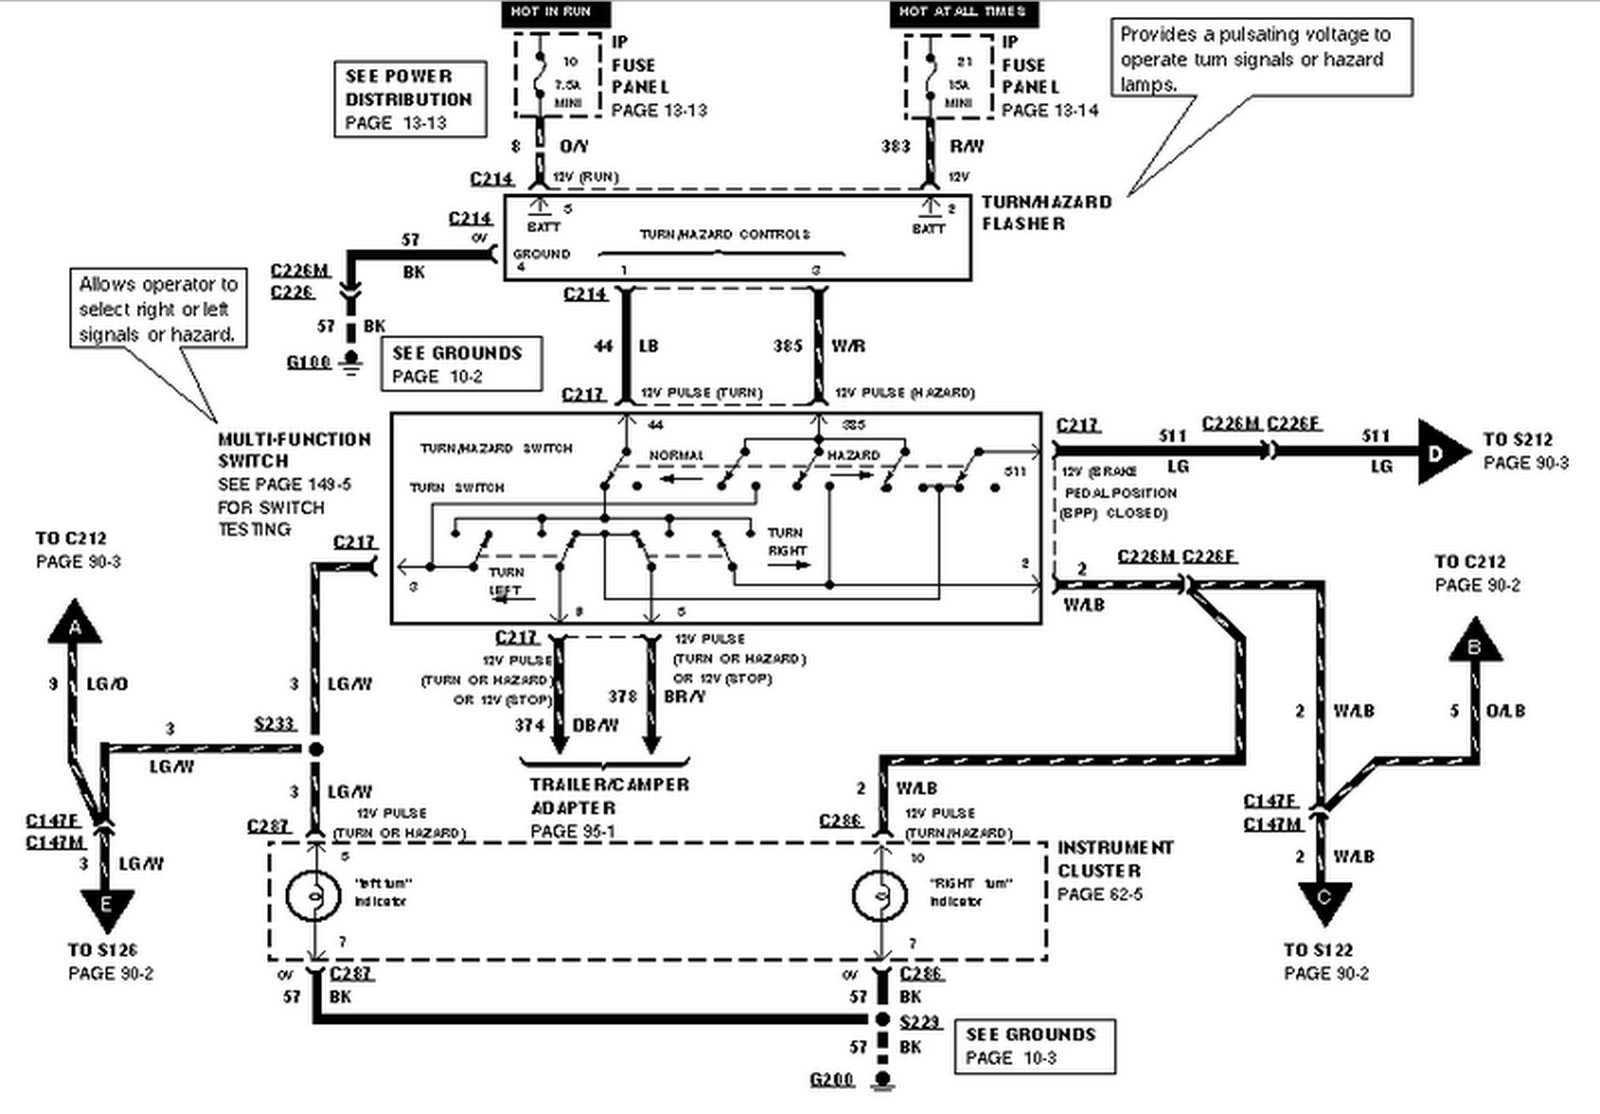 wiring diagram for ford explorer the wiring diagram 1997 ford explorer power window wiring diagram nodasystech wiring diagram